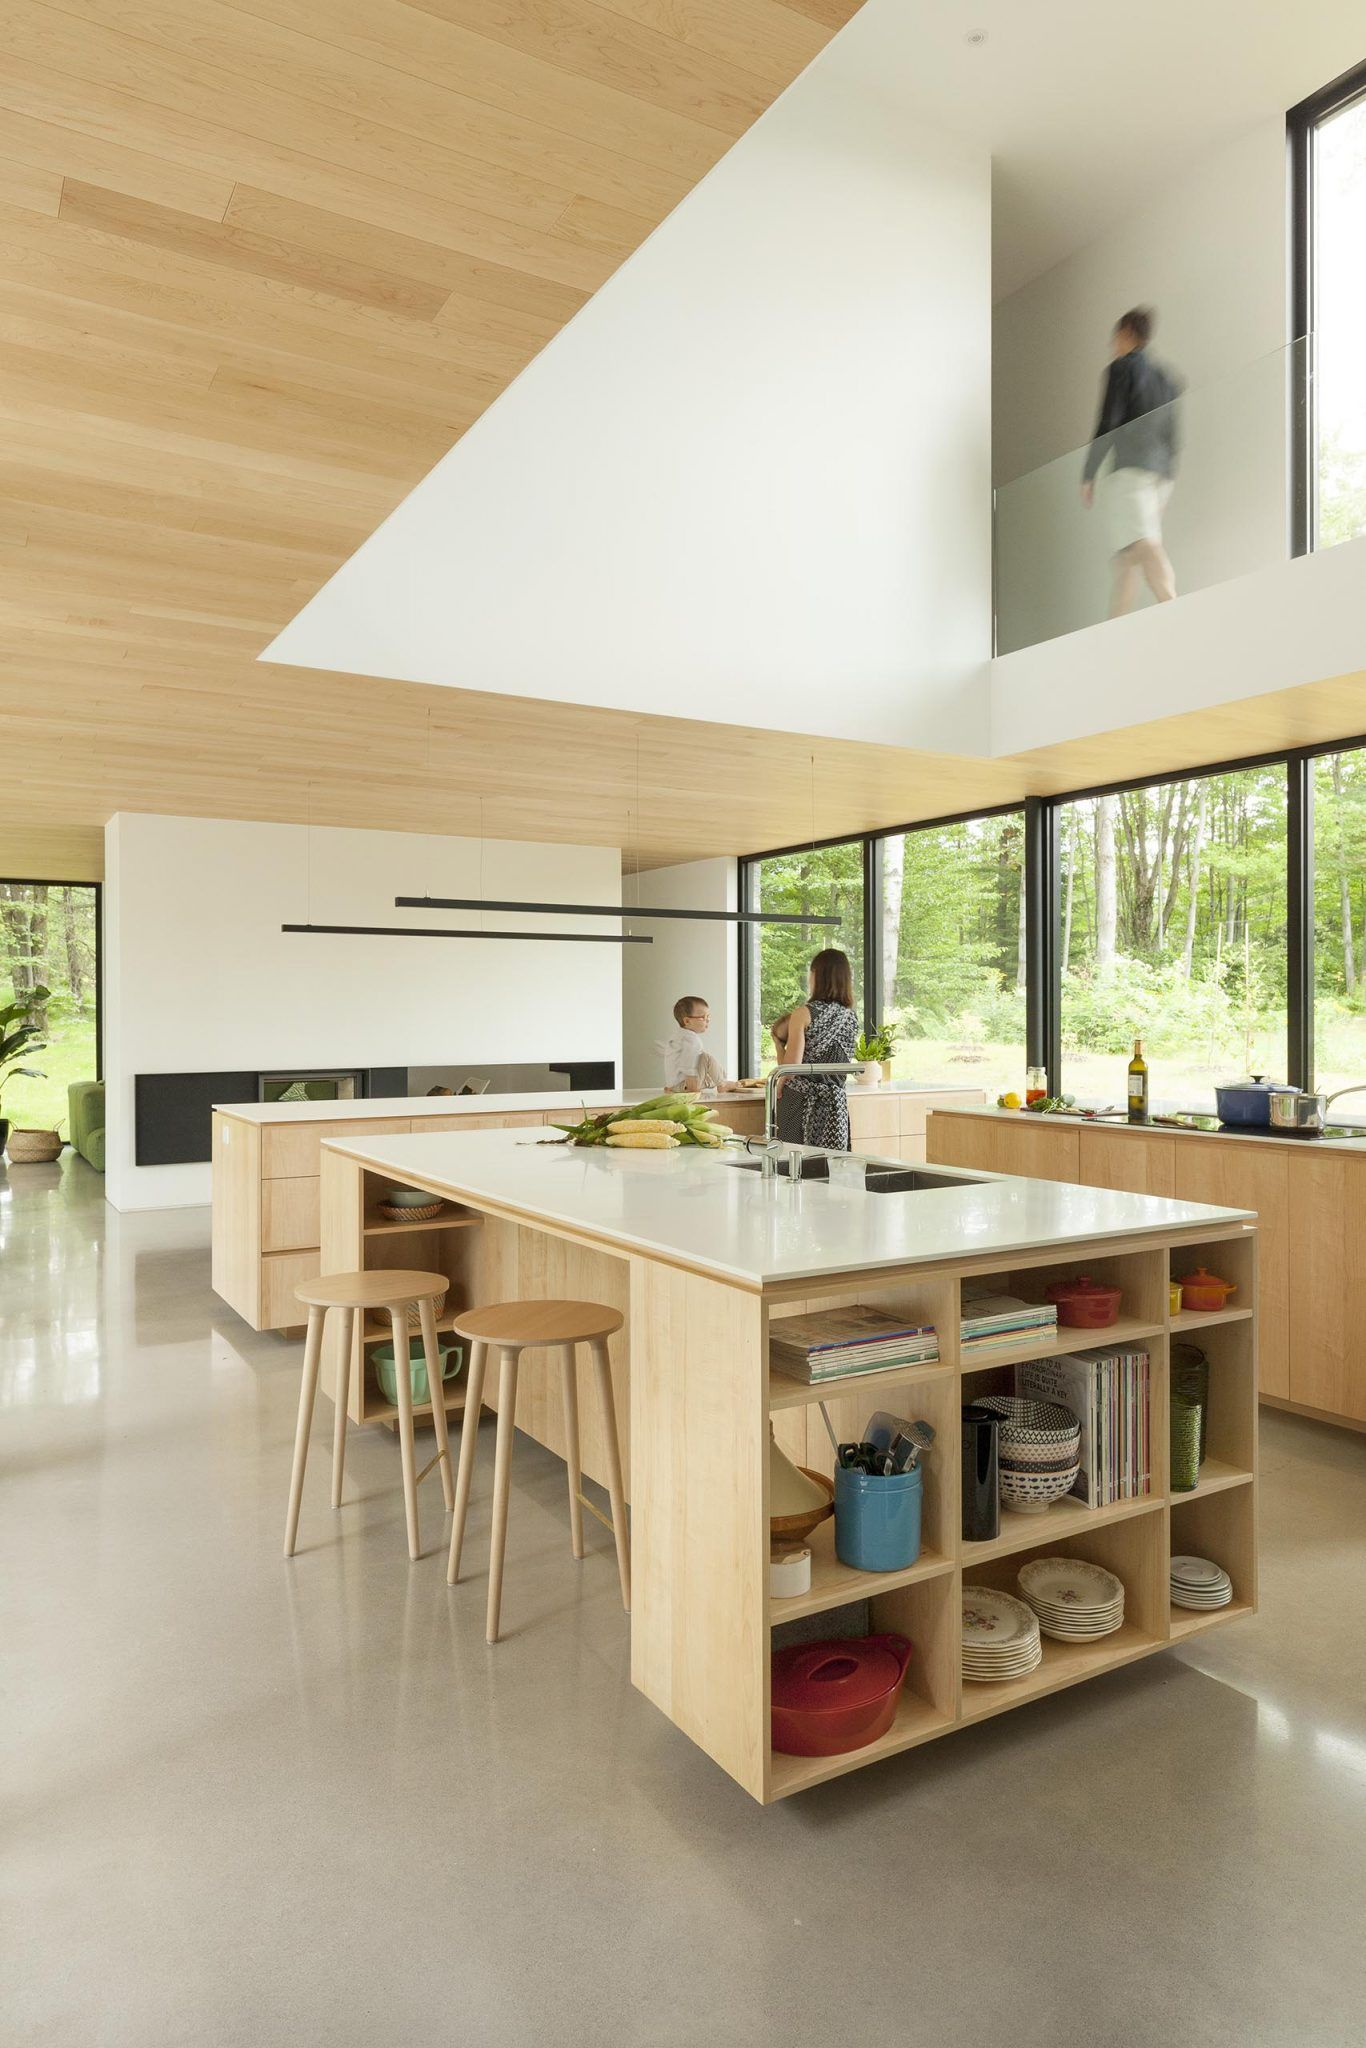 This Kitchen Design Has Three Islands To Maximize